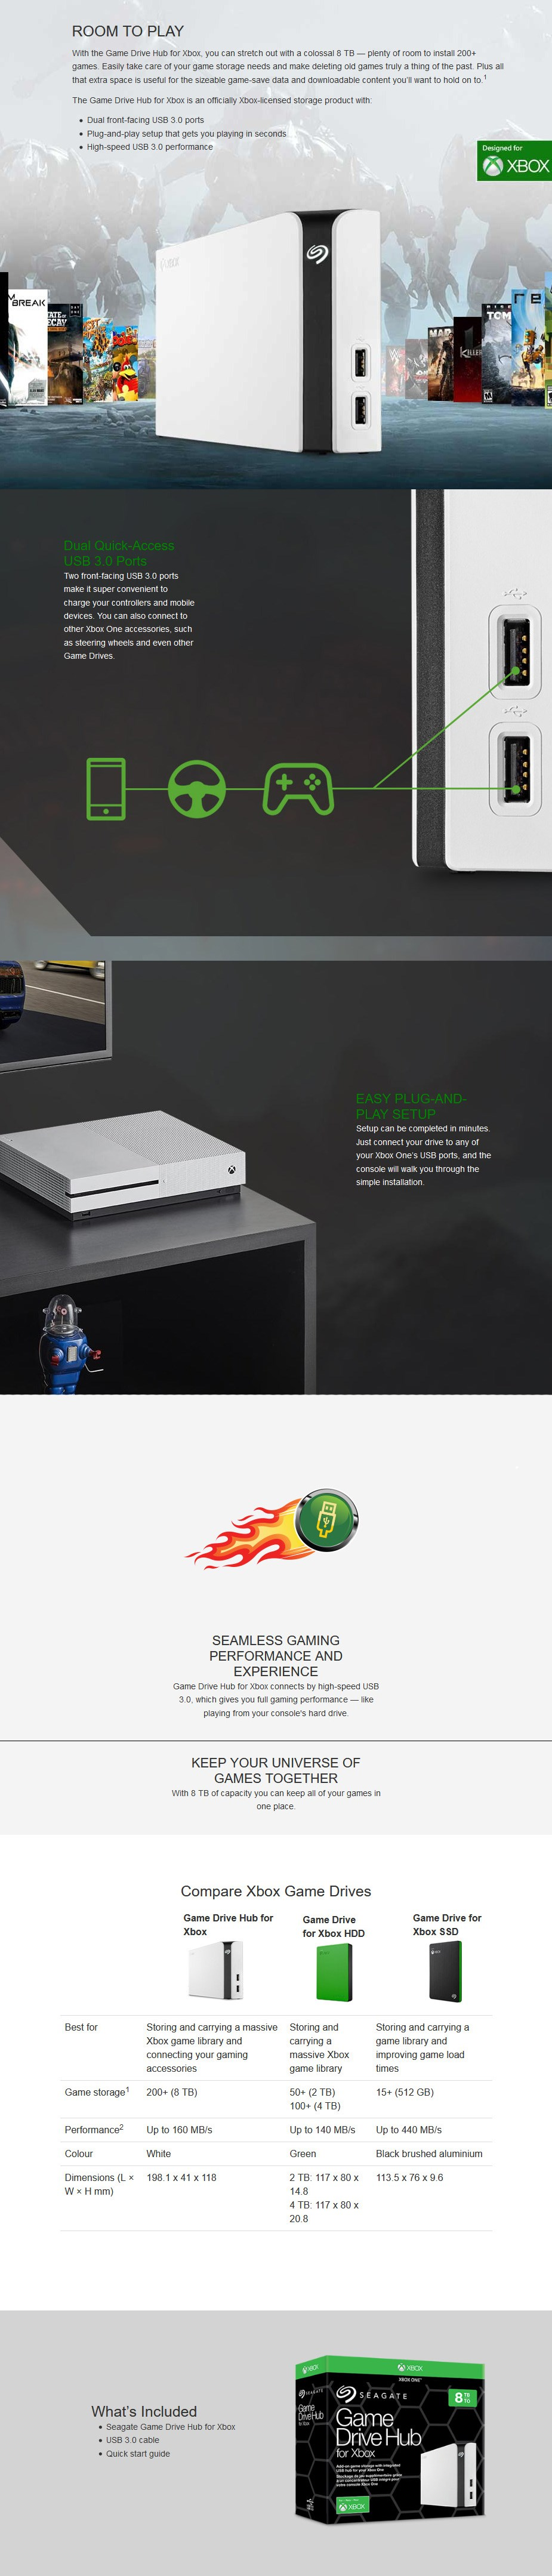 Seagate 8TB Game Drive Hub for Xbox - Overview 1